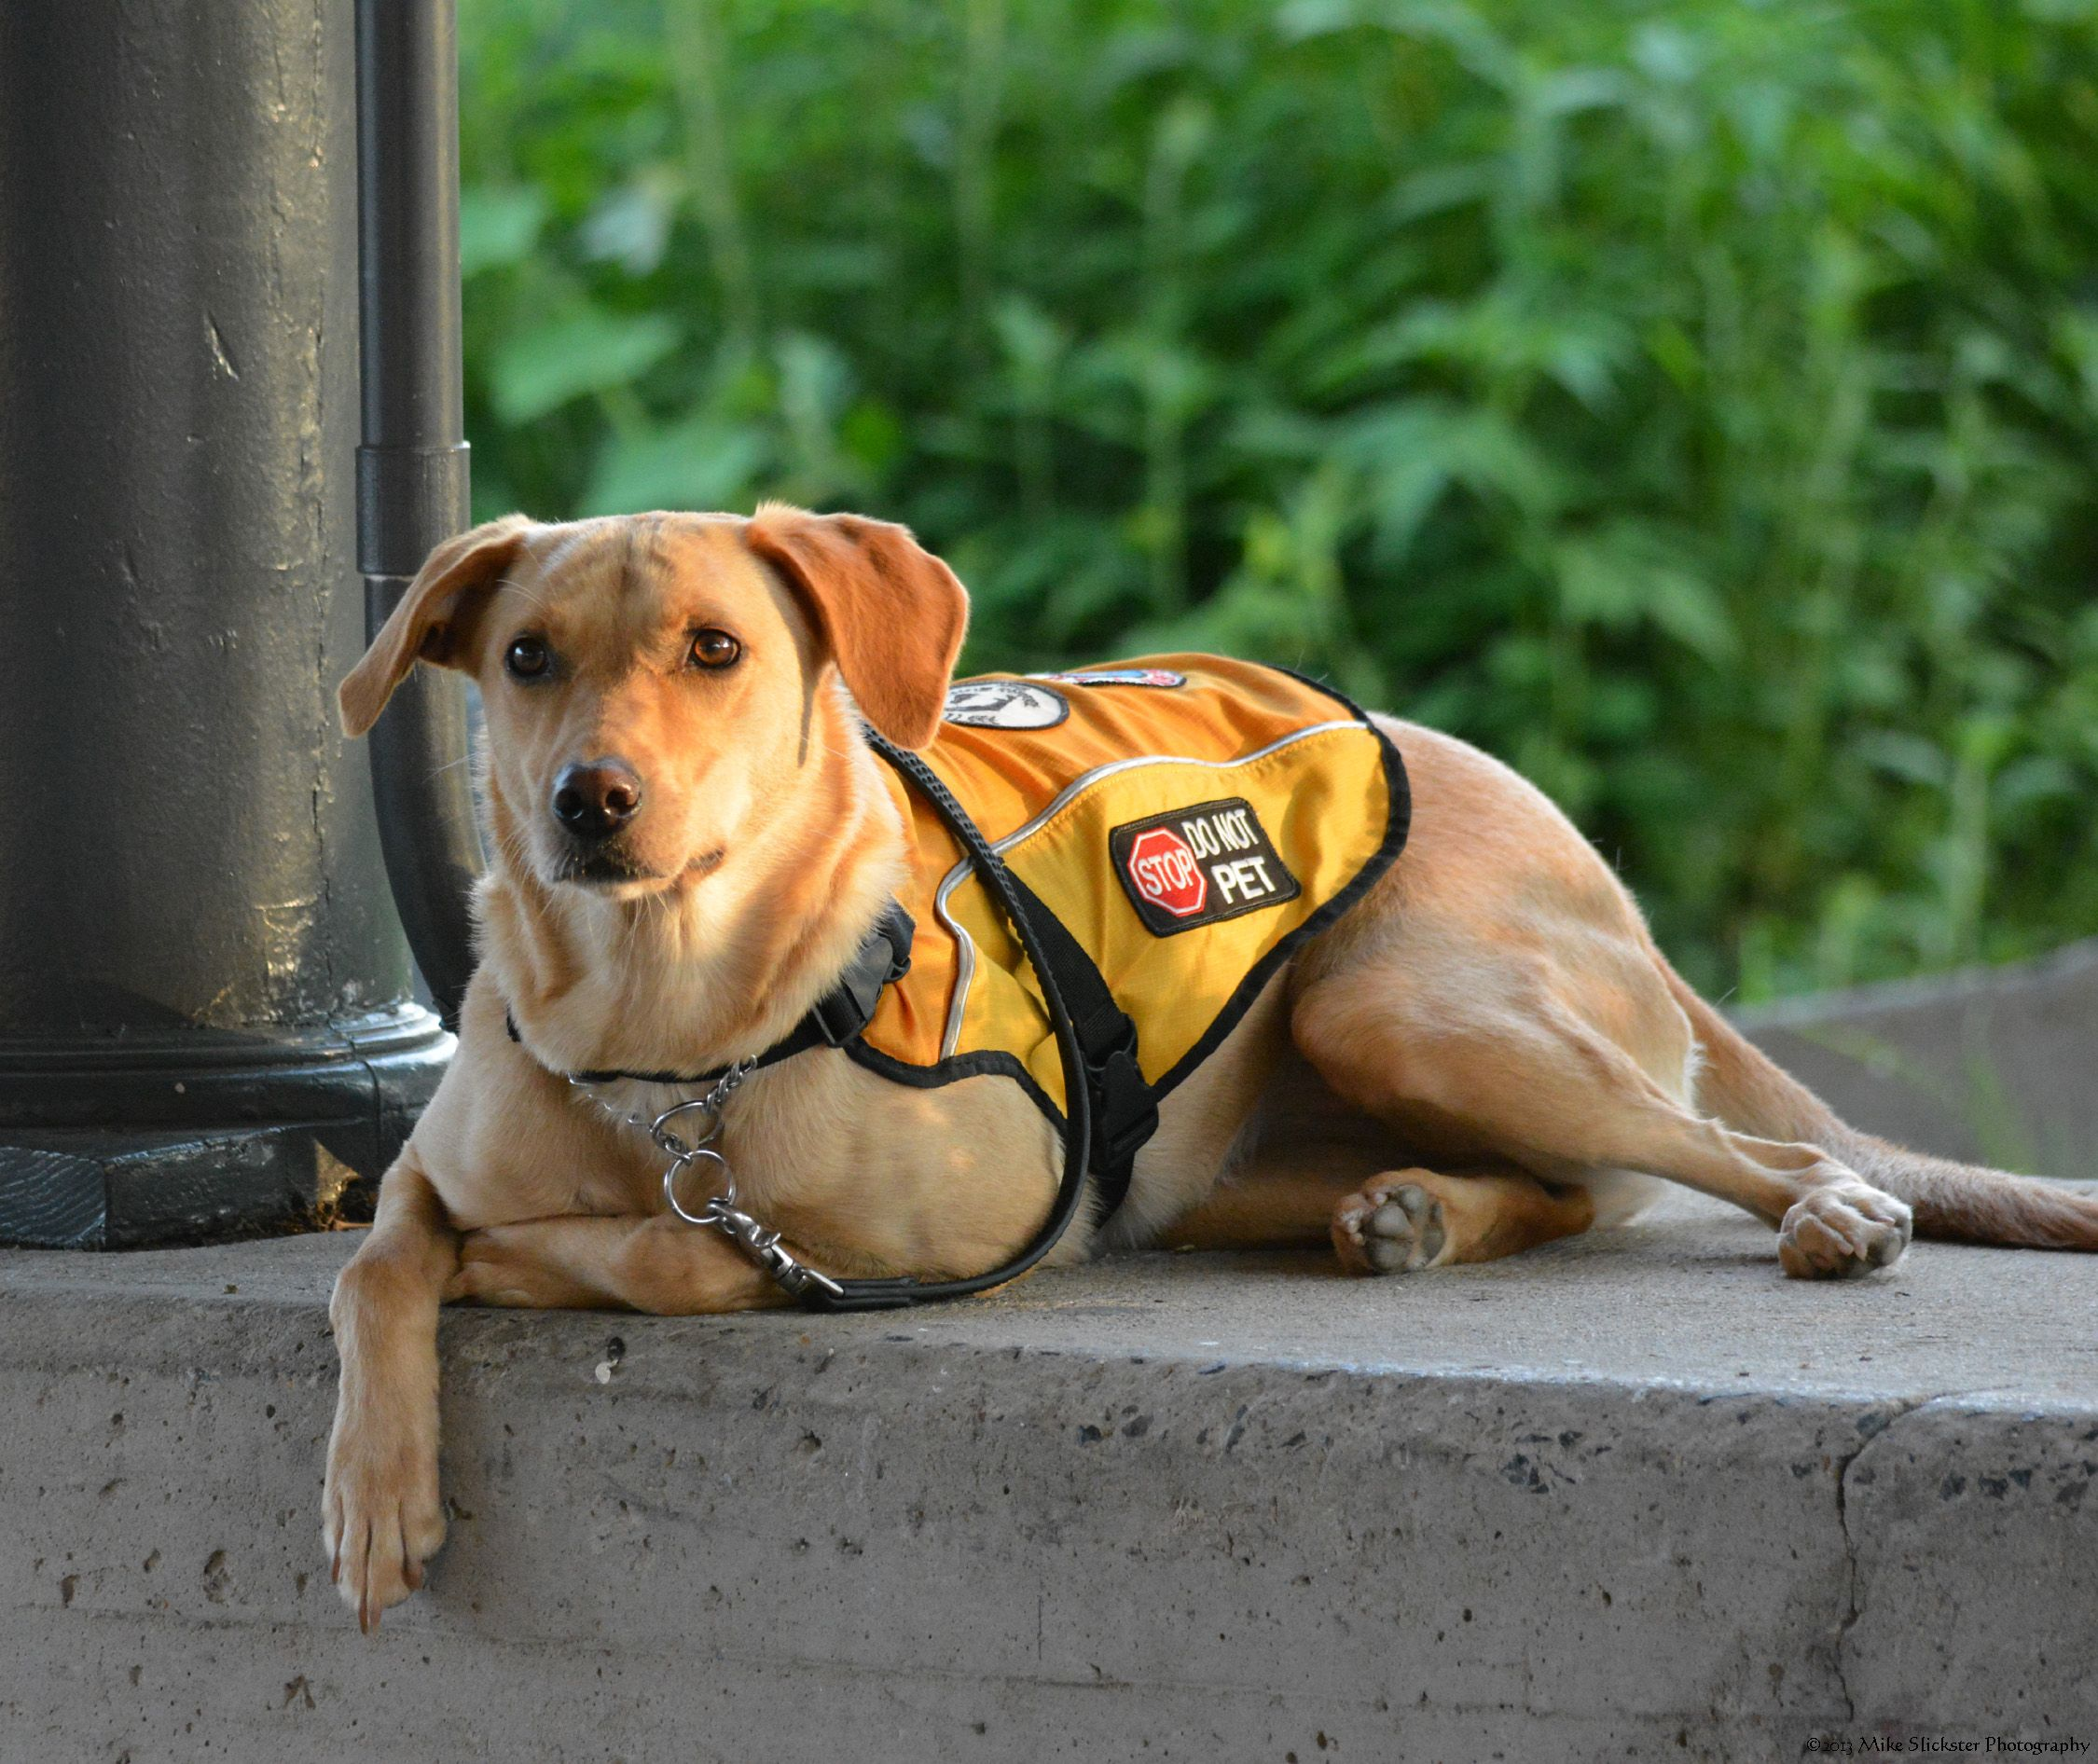 Diabetic Alert Dog in training. Very smart animal. Dogs